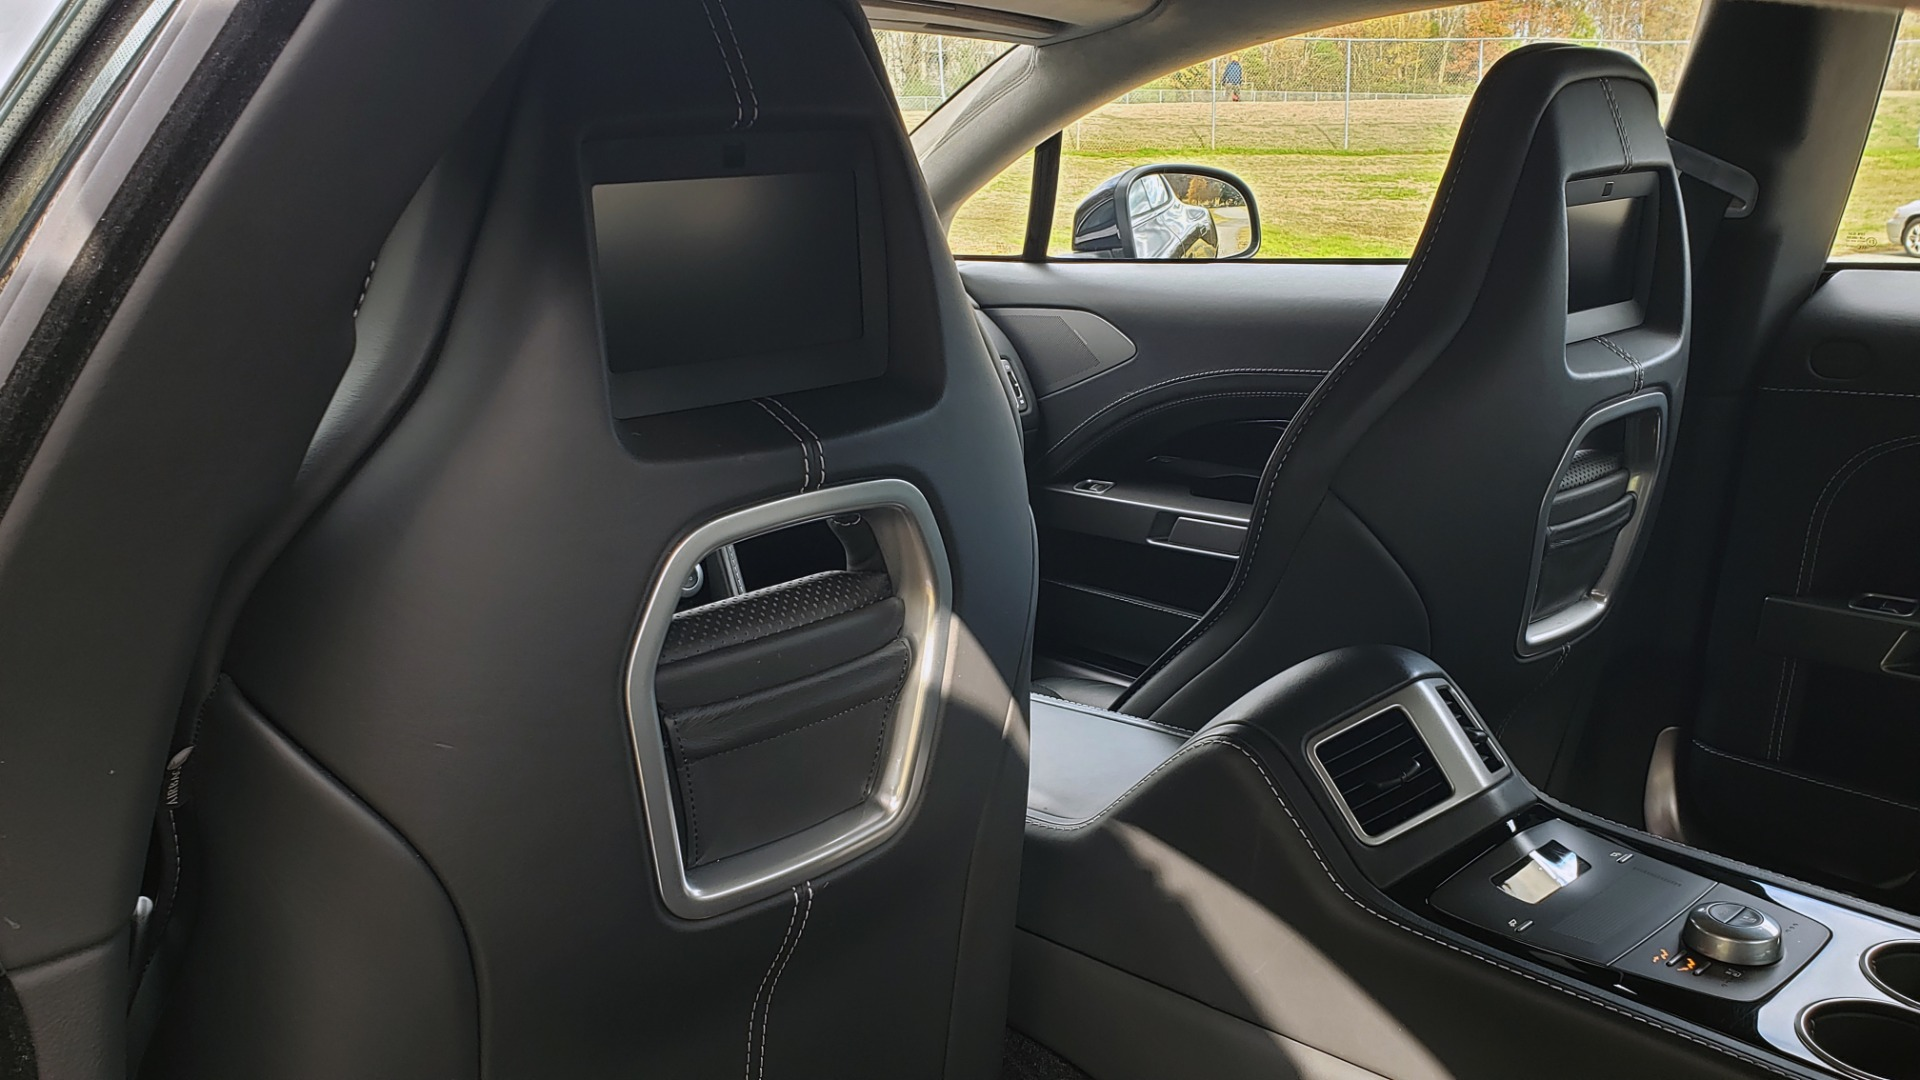 Used 2012 Aston Martin RAPIDE LUXURY 6.0L V12 / NAV / B&O SND / ENTERTAINMENT / REARVIEW for sale Sold at Formula Imports in Charlotte NC 28227 62